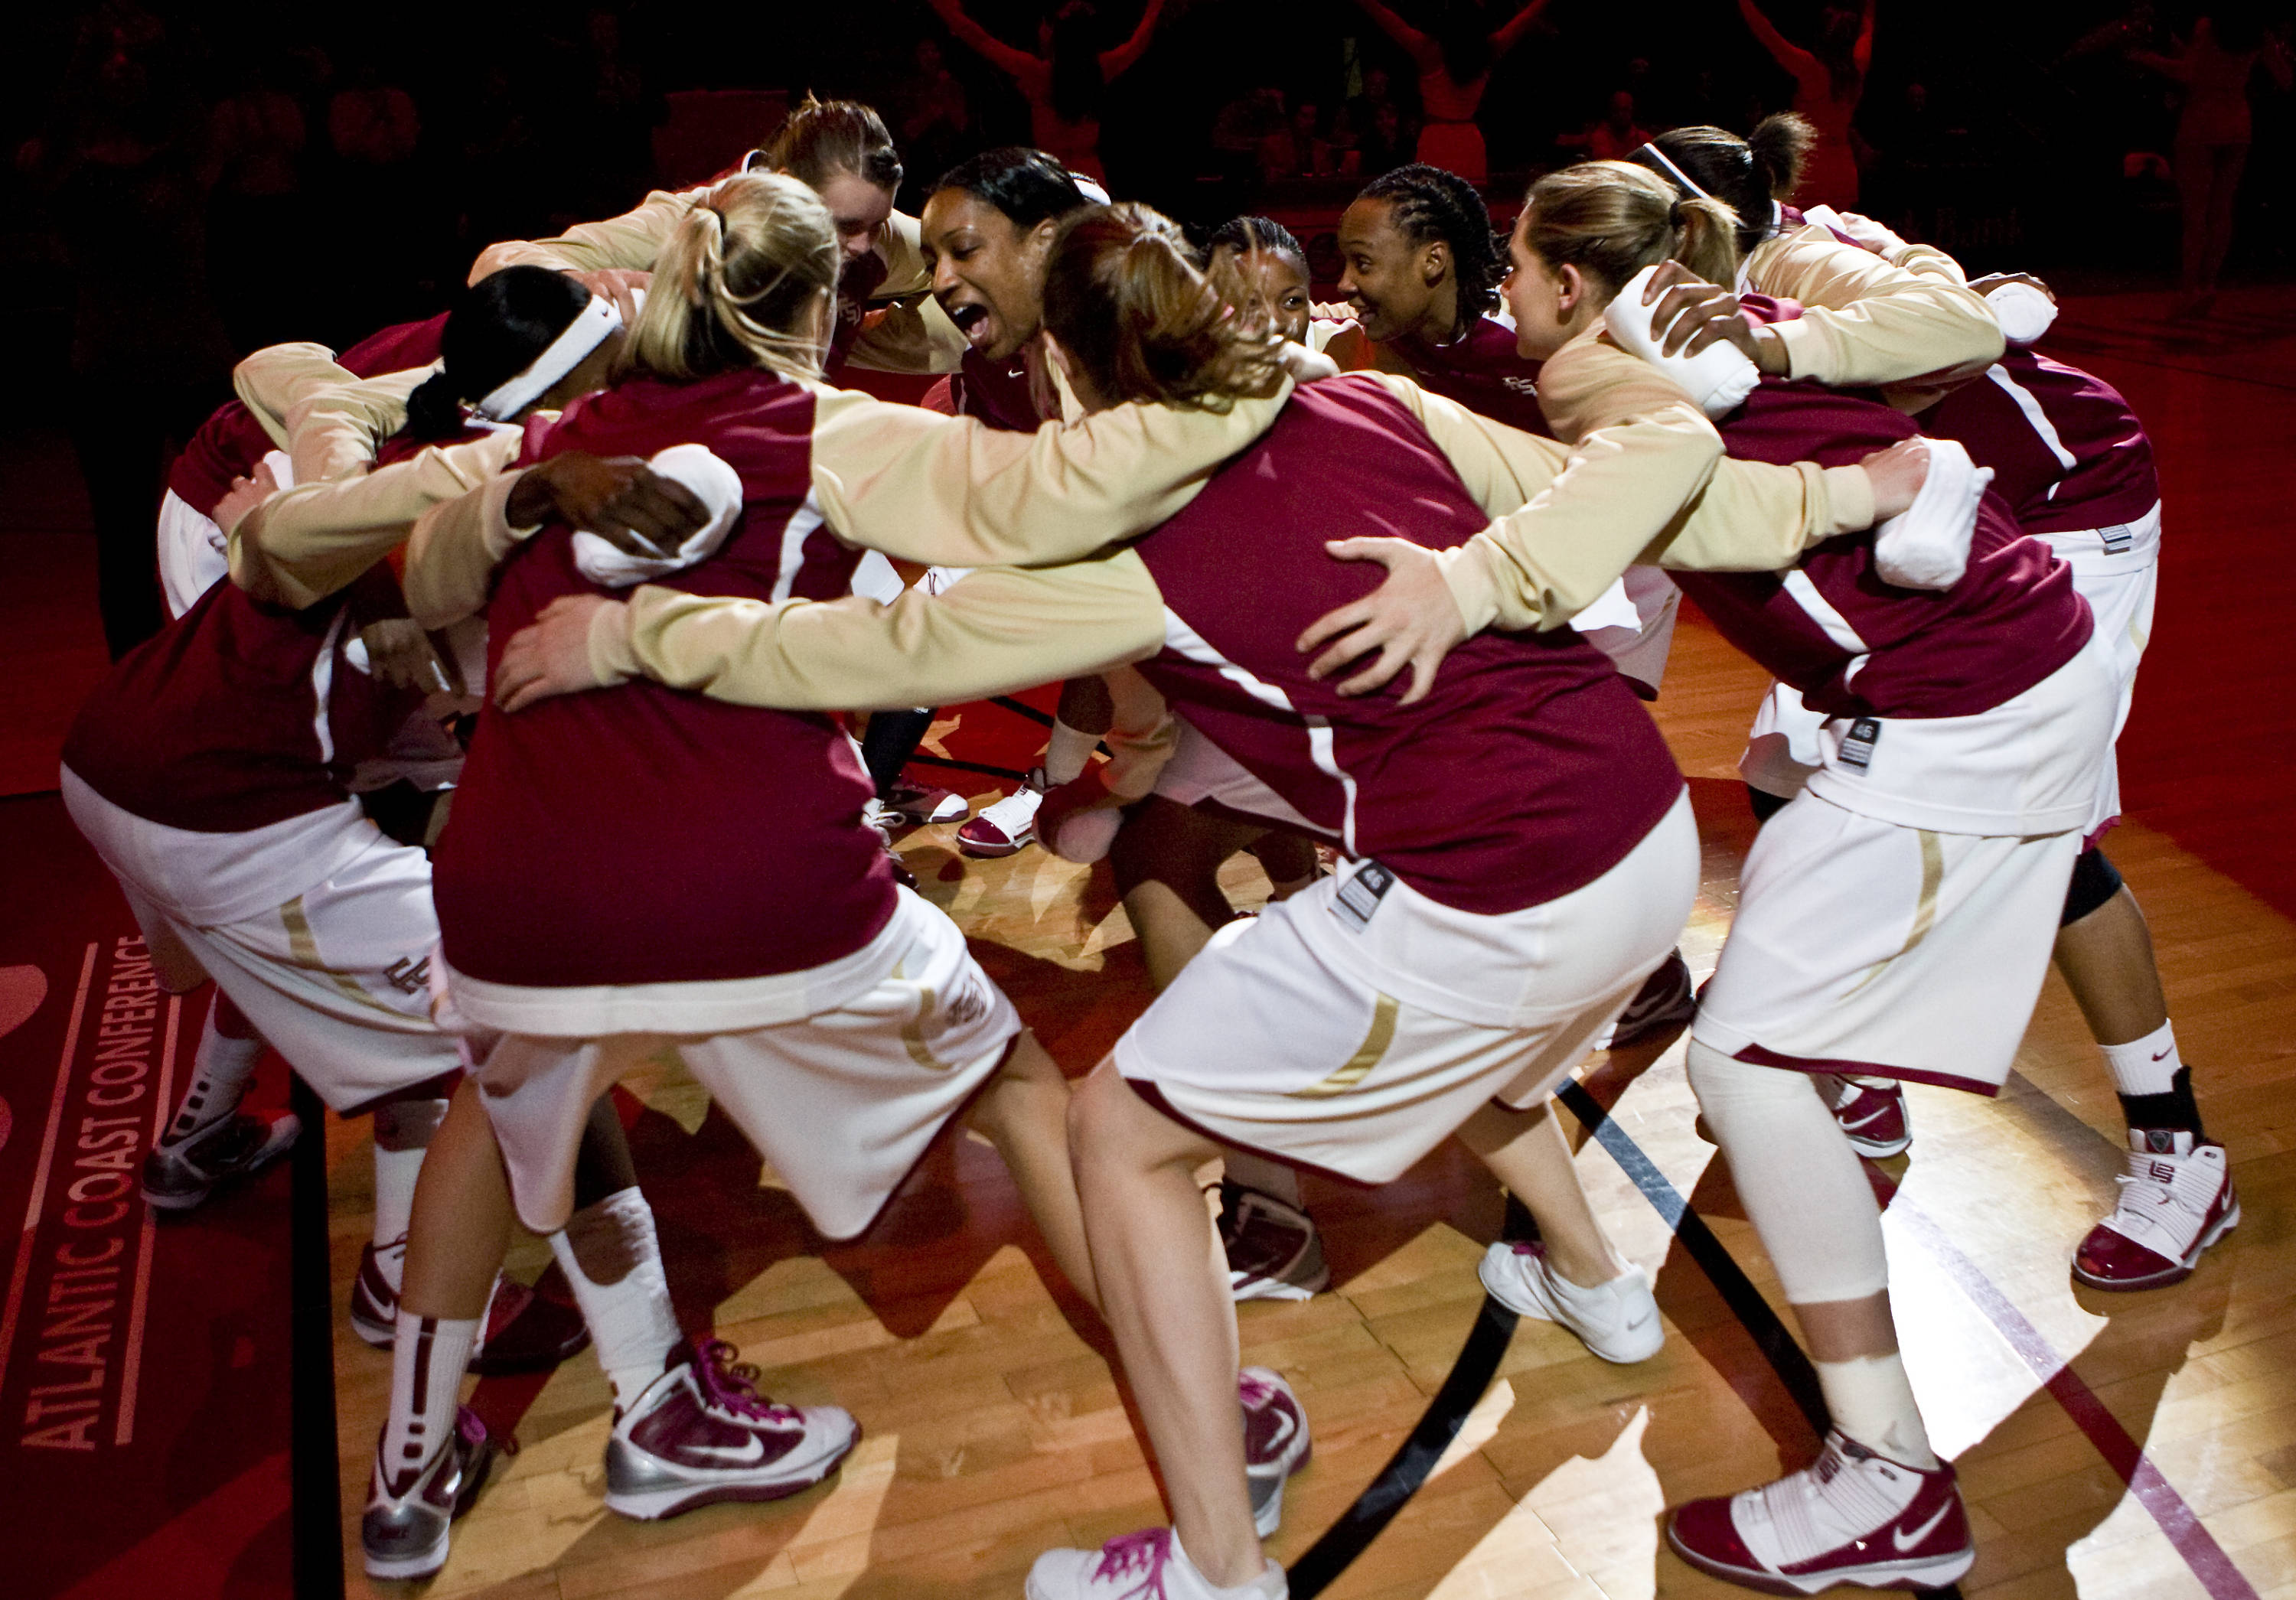 August 23 ... It's the team-first mentality that has made the FSU women's basketball program one of the best in the country. Will you help the Seminoles fuel the fire in 2010-11? Grab your tickets and come out and support the 'Noles.